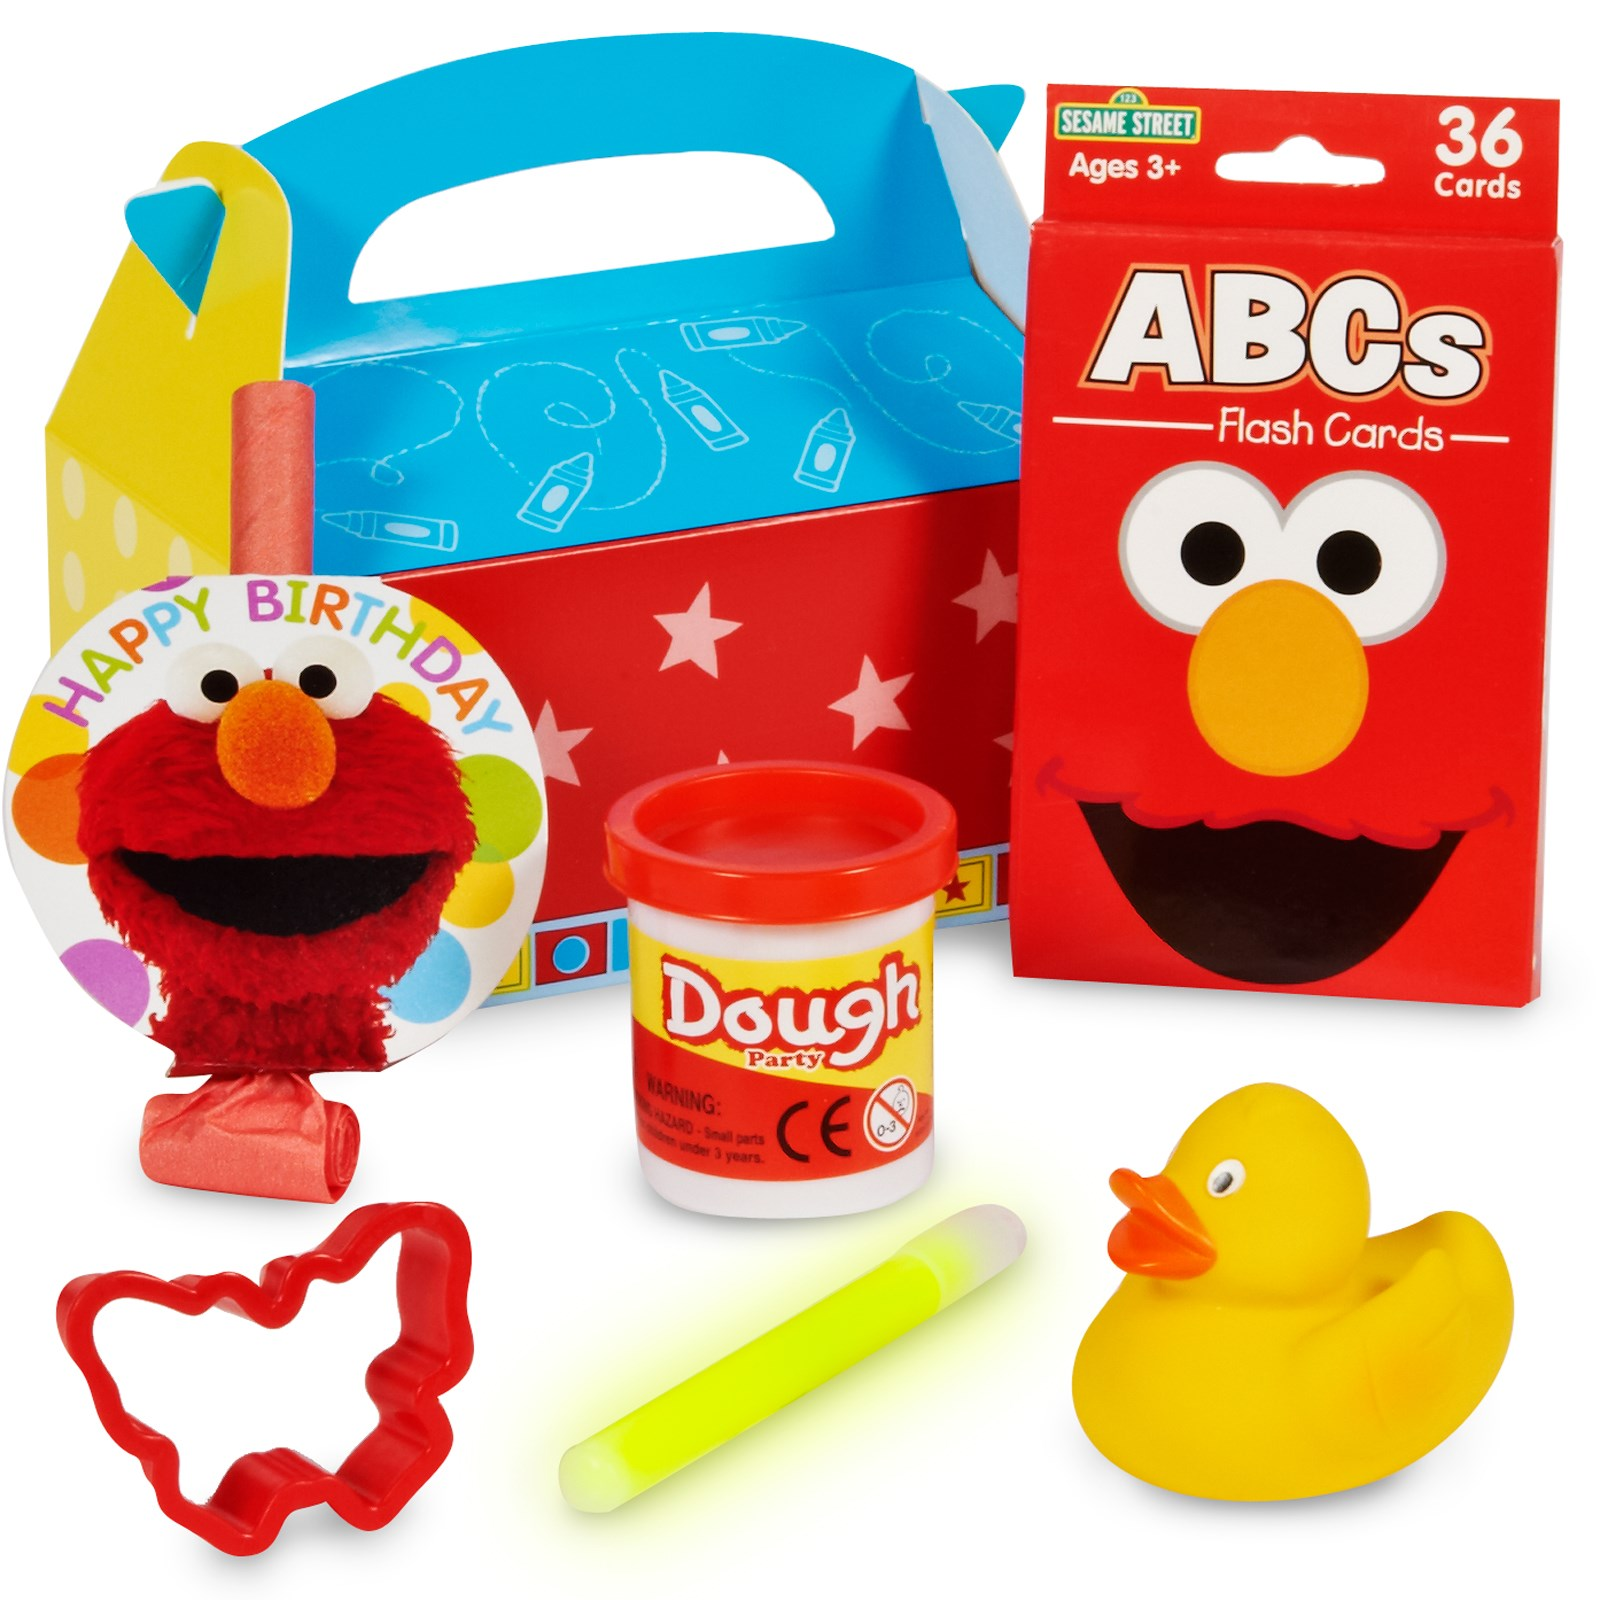 Sesame Street Elmo Party - Filled Party Favor Box for your Elmo Party Games for Toddlers